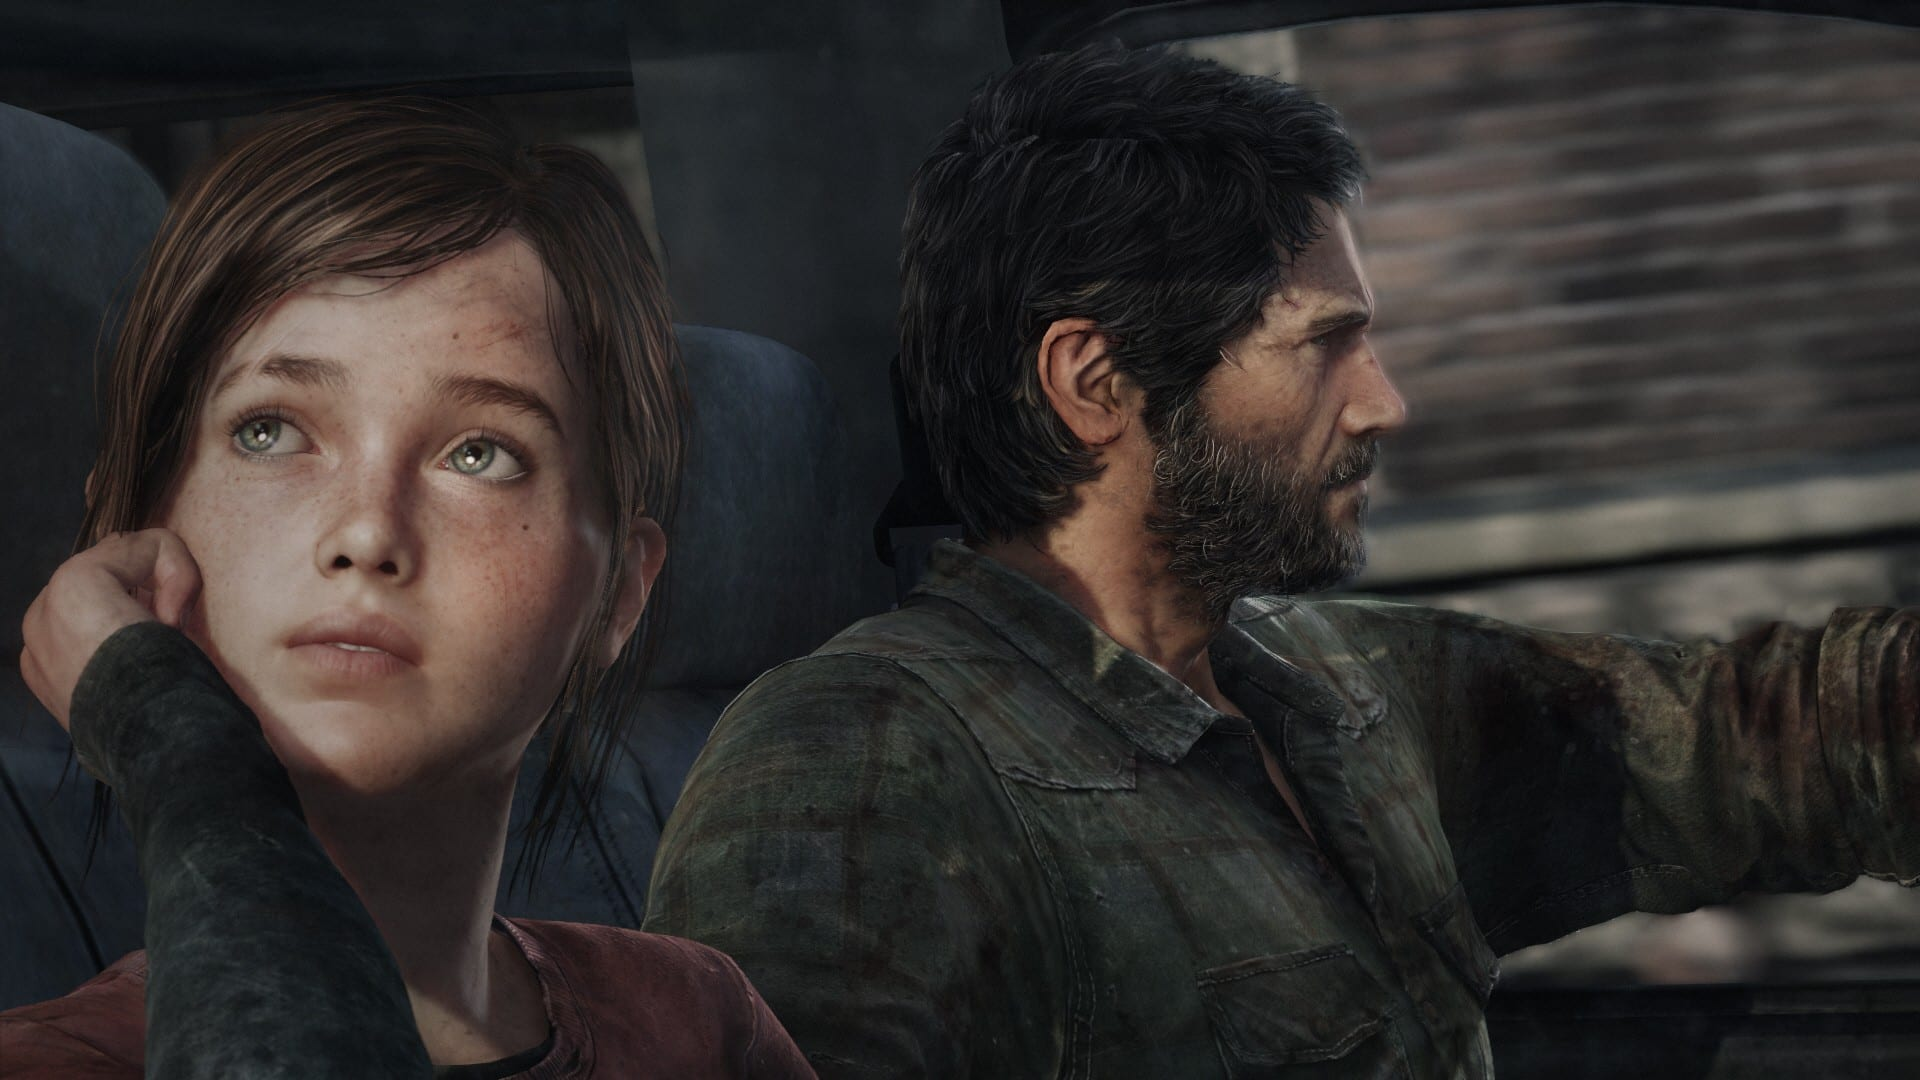 The-Last-of-Us-Remastered-for-PS4-Gets-First-Leaked-Screenshots-450009-2